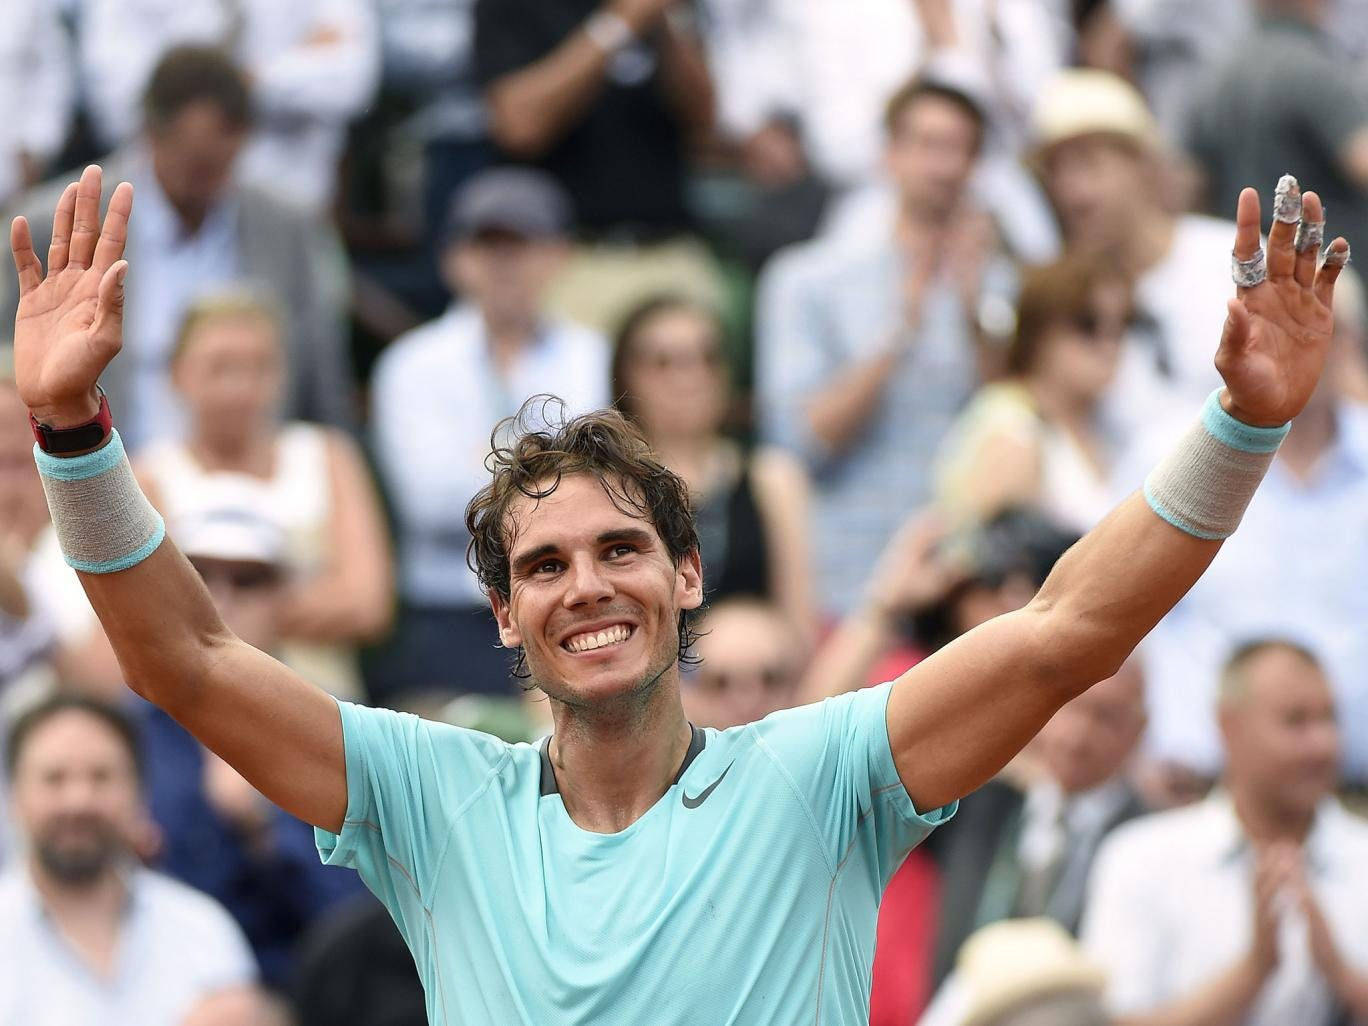 Rafael Nadal celebrates winning the French Open 2014 title after defeating Novak Djokovic